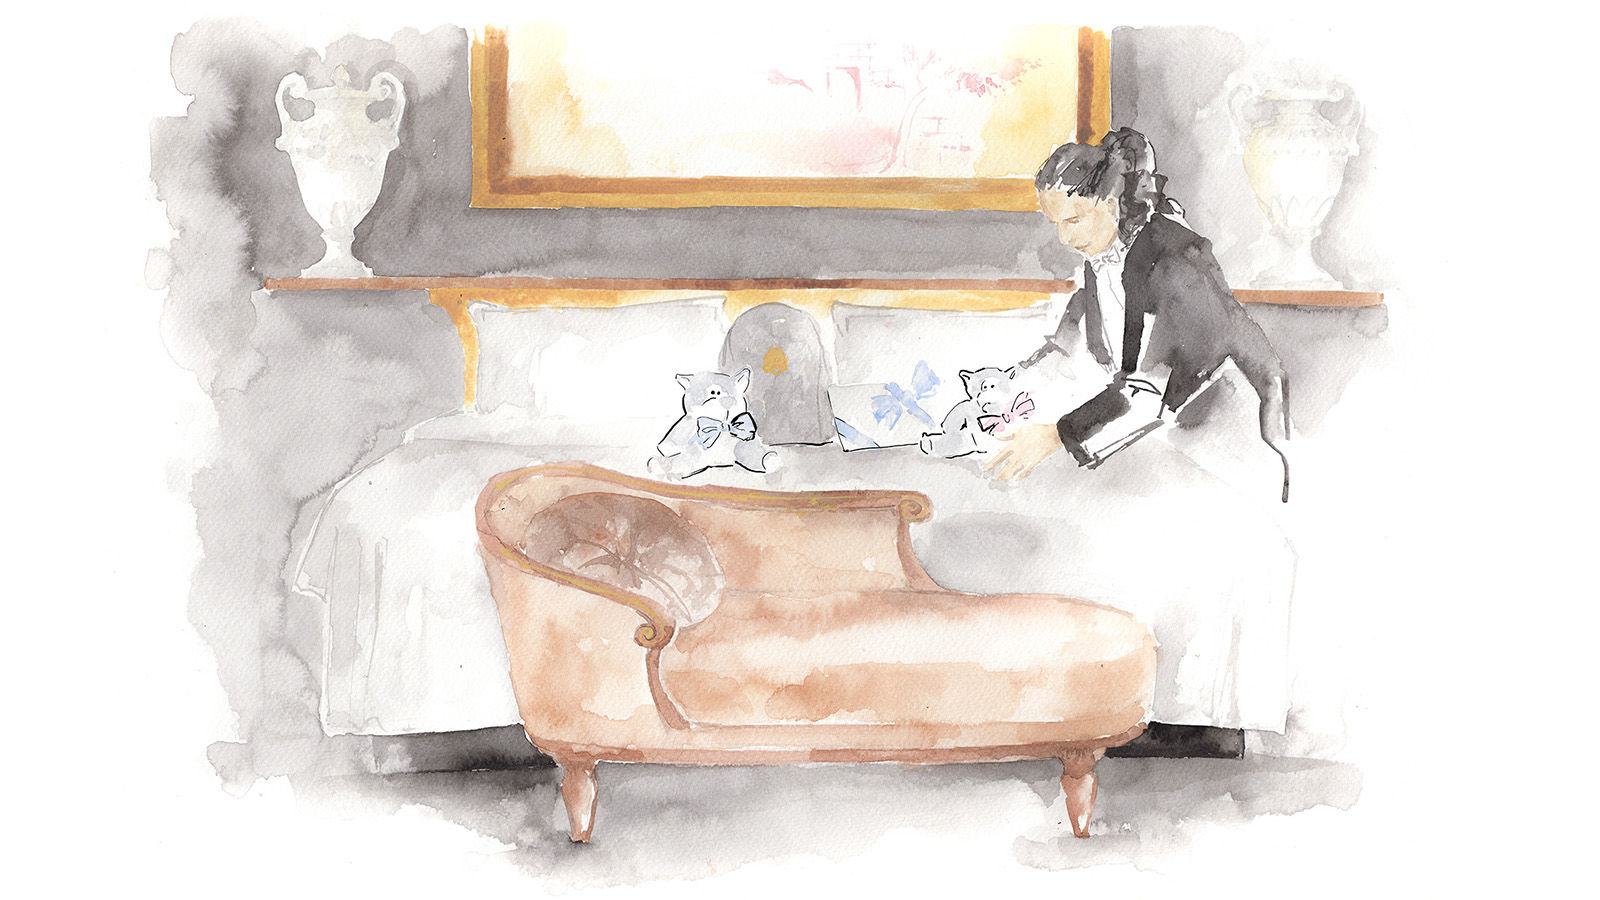 Traditions Familiales au St. Regis illustration Maya Beus